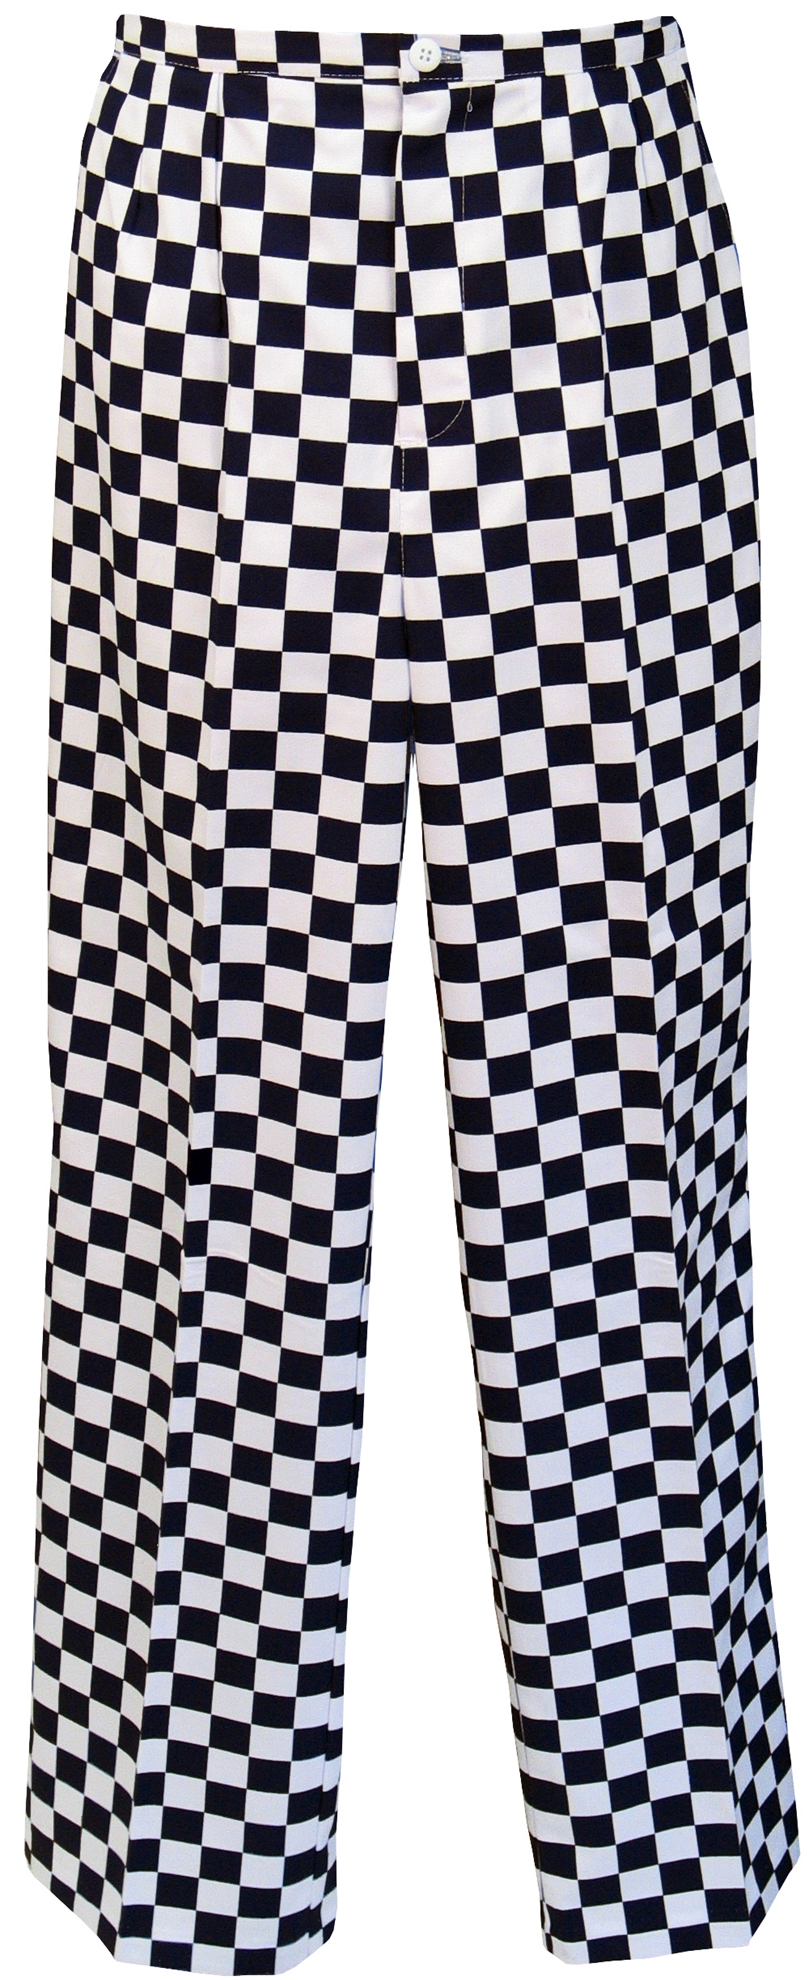 Picture of Unisex Chefs Large Check Trousers - Black/White